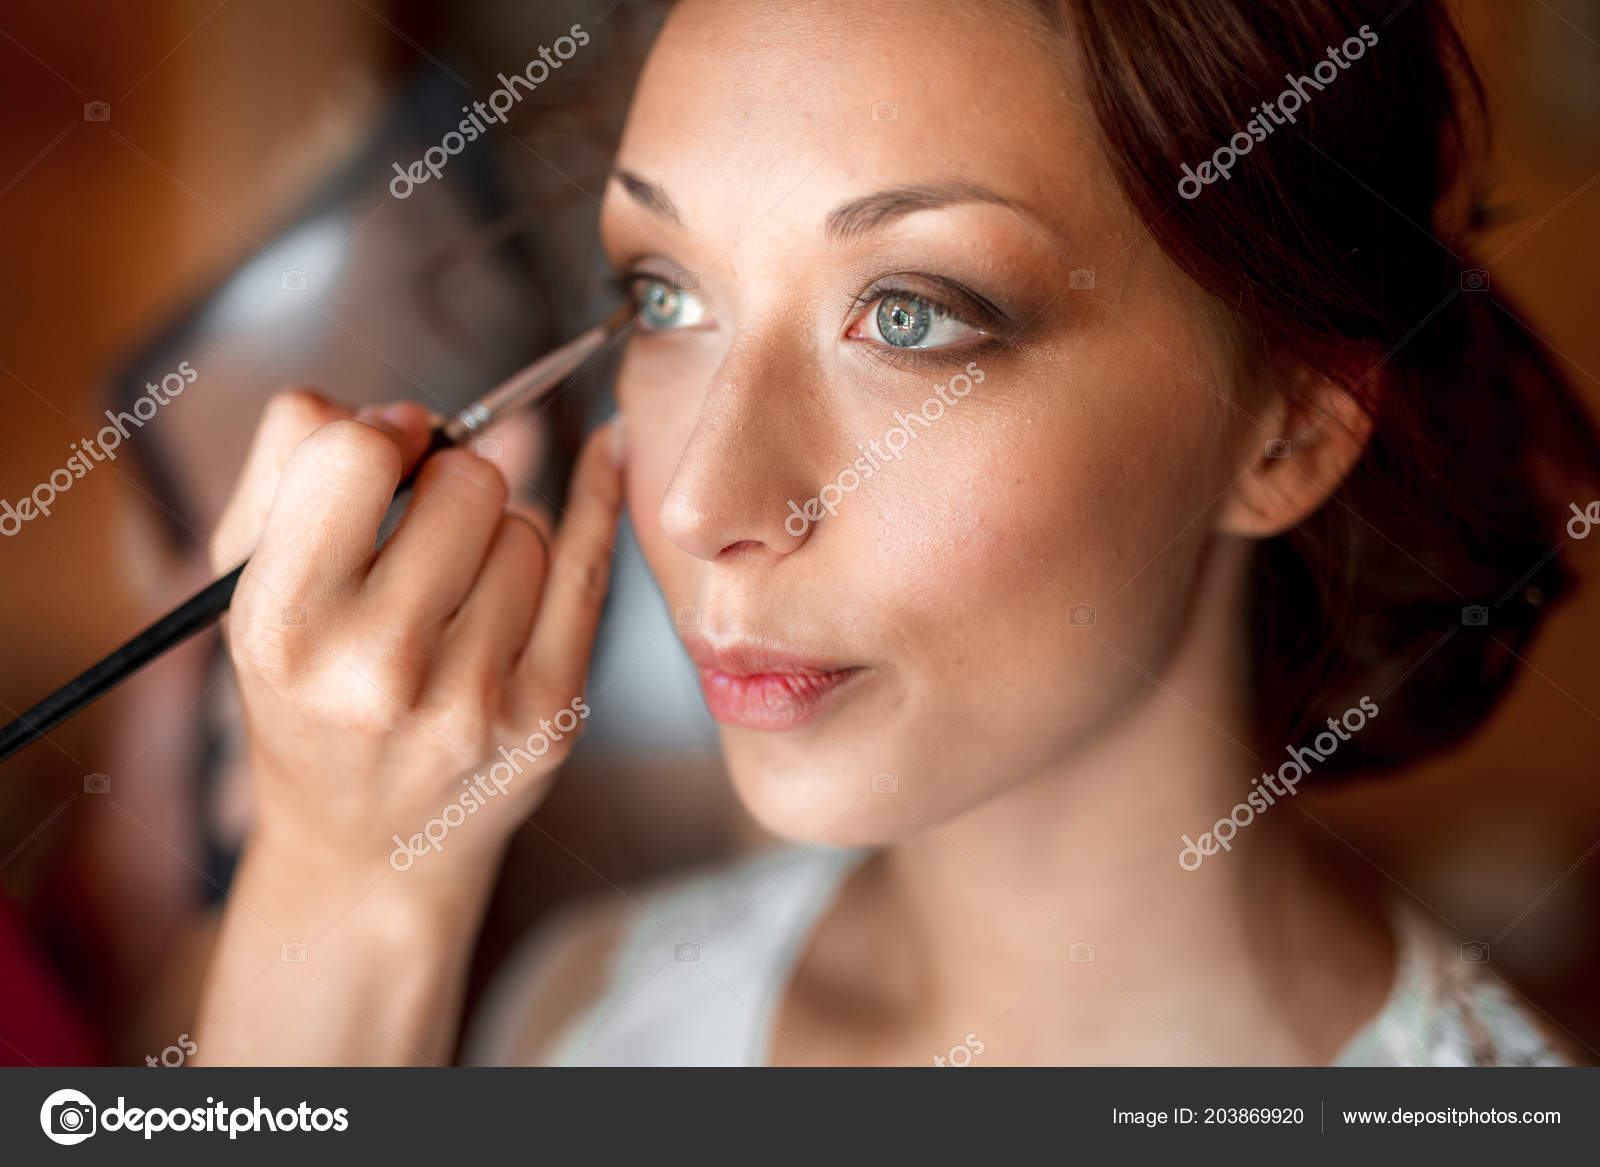 Process of making makeup  Make-up artist working with brush